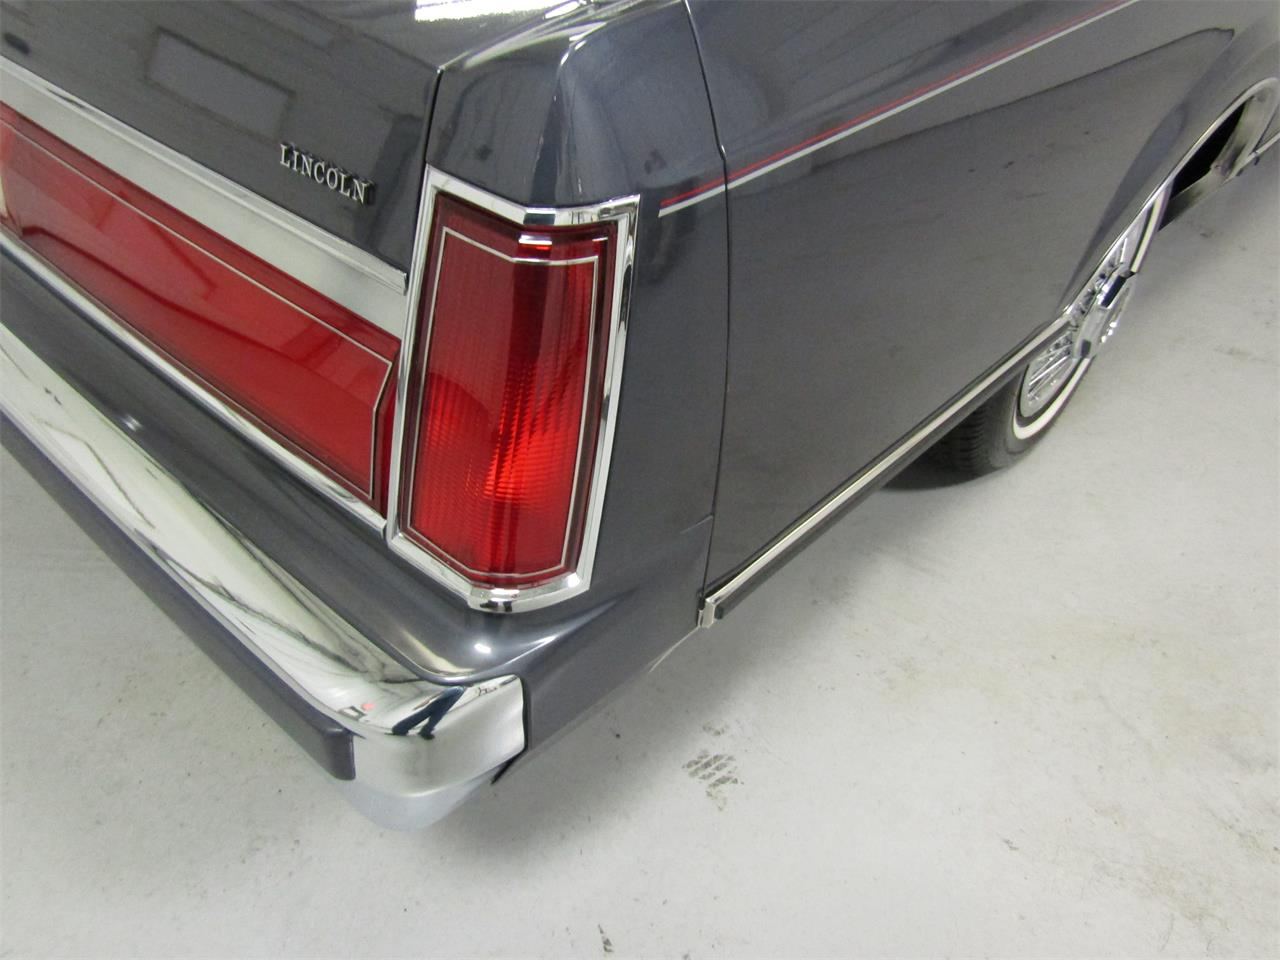 Large Picture of '85 Lincoln Town Car located in Virginia - $17,927.00 Offered by Duncan Imports & Classic Cars - OQD5